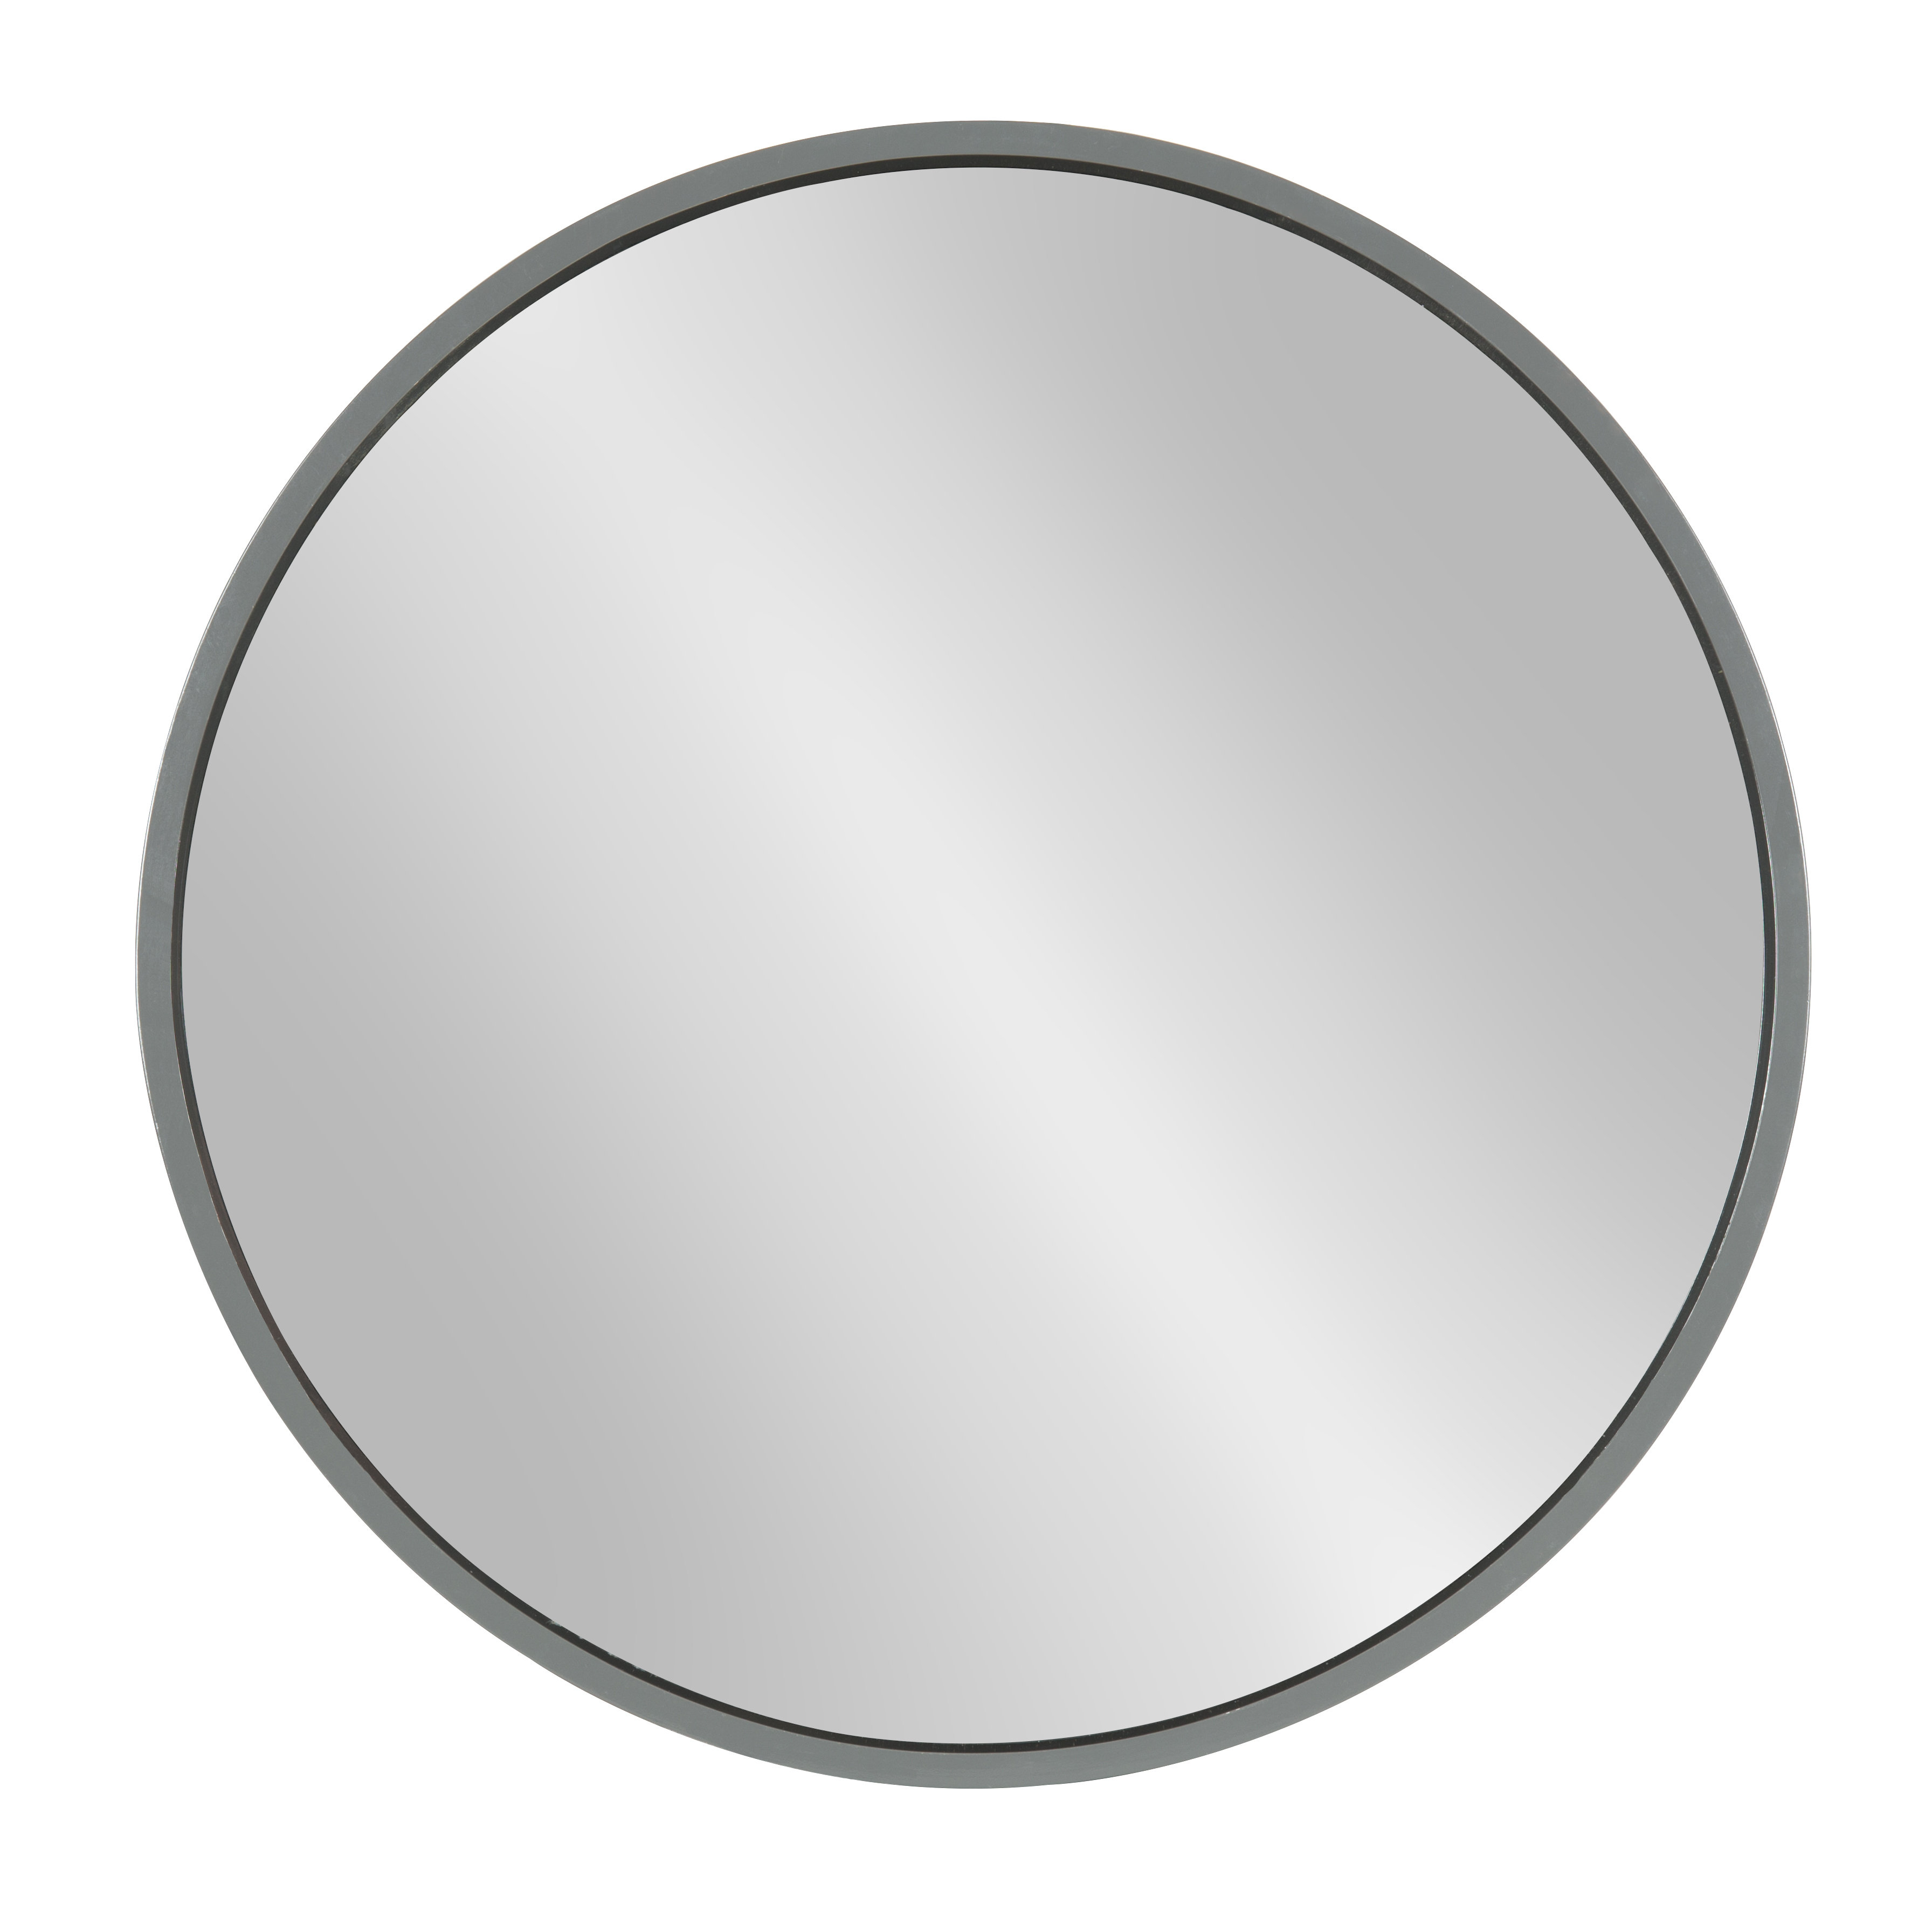 Best And Newest Levan Modern & Contemporary Accent Mirrors Regarding Homerton Round Wall Accent Mirror (View 5 of 20)